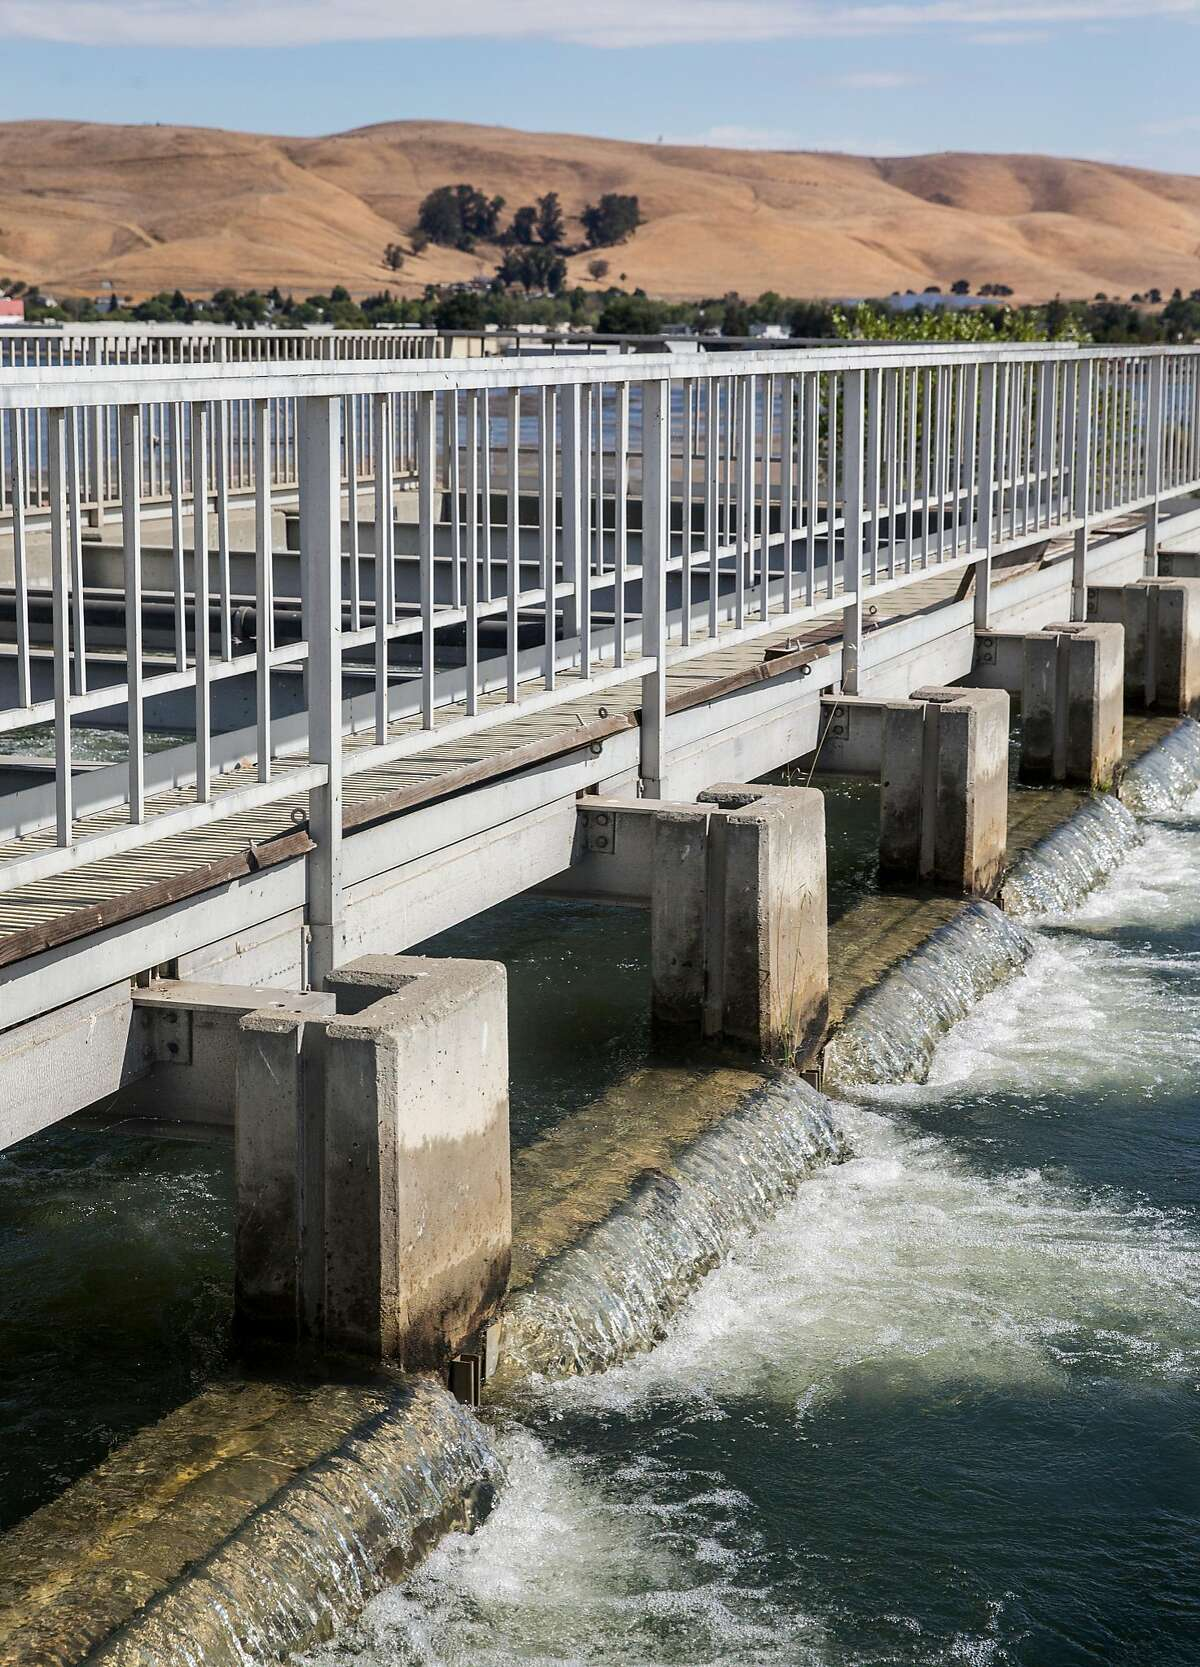 Water from the nearby Mallard Reservoir moves through the treatment process at the Contra Costa County Water District's Ralph D. Bollman Water Treatment Plant in Concord, Calif. Wednesday, Oct. 3, 2018.